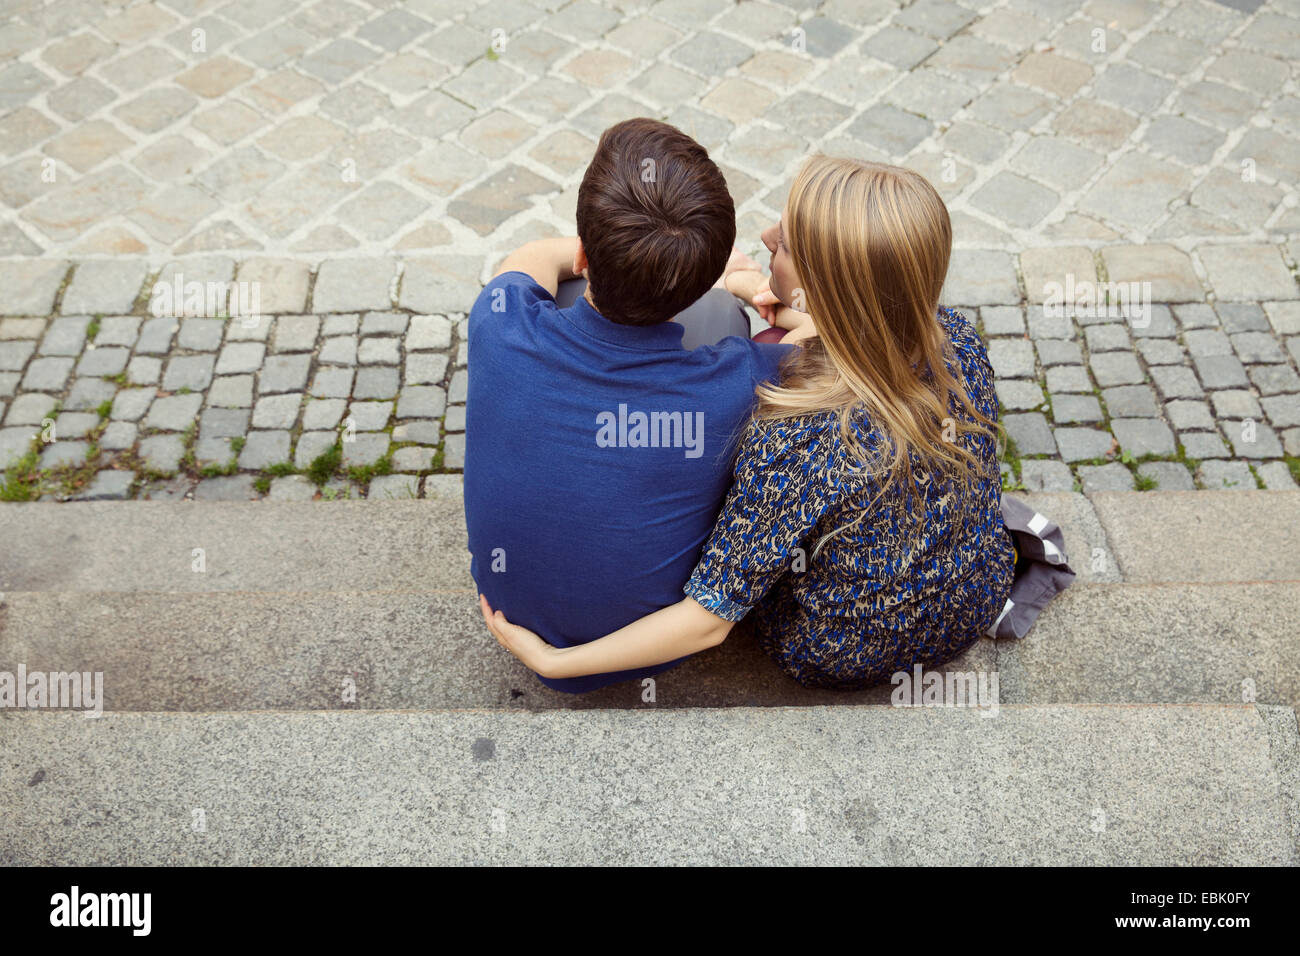 Rear view of young couple sitting on street sidewalk - Stock Image